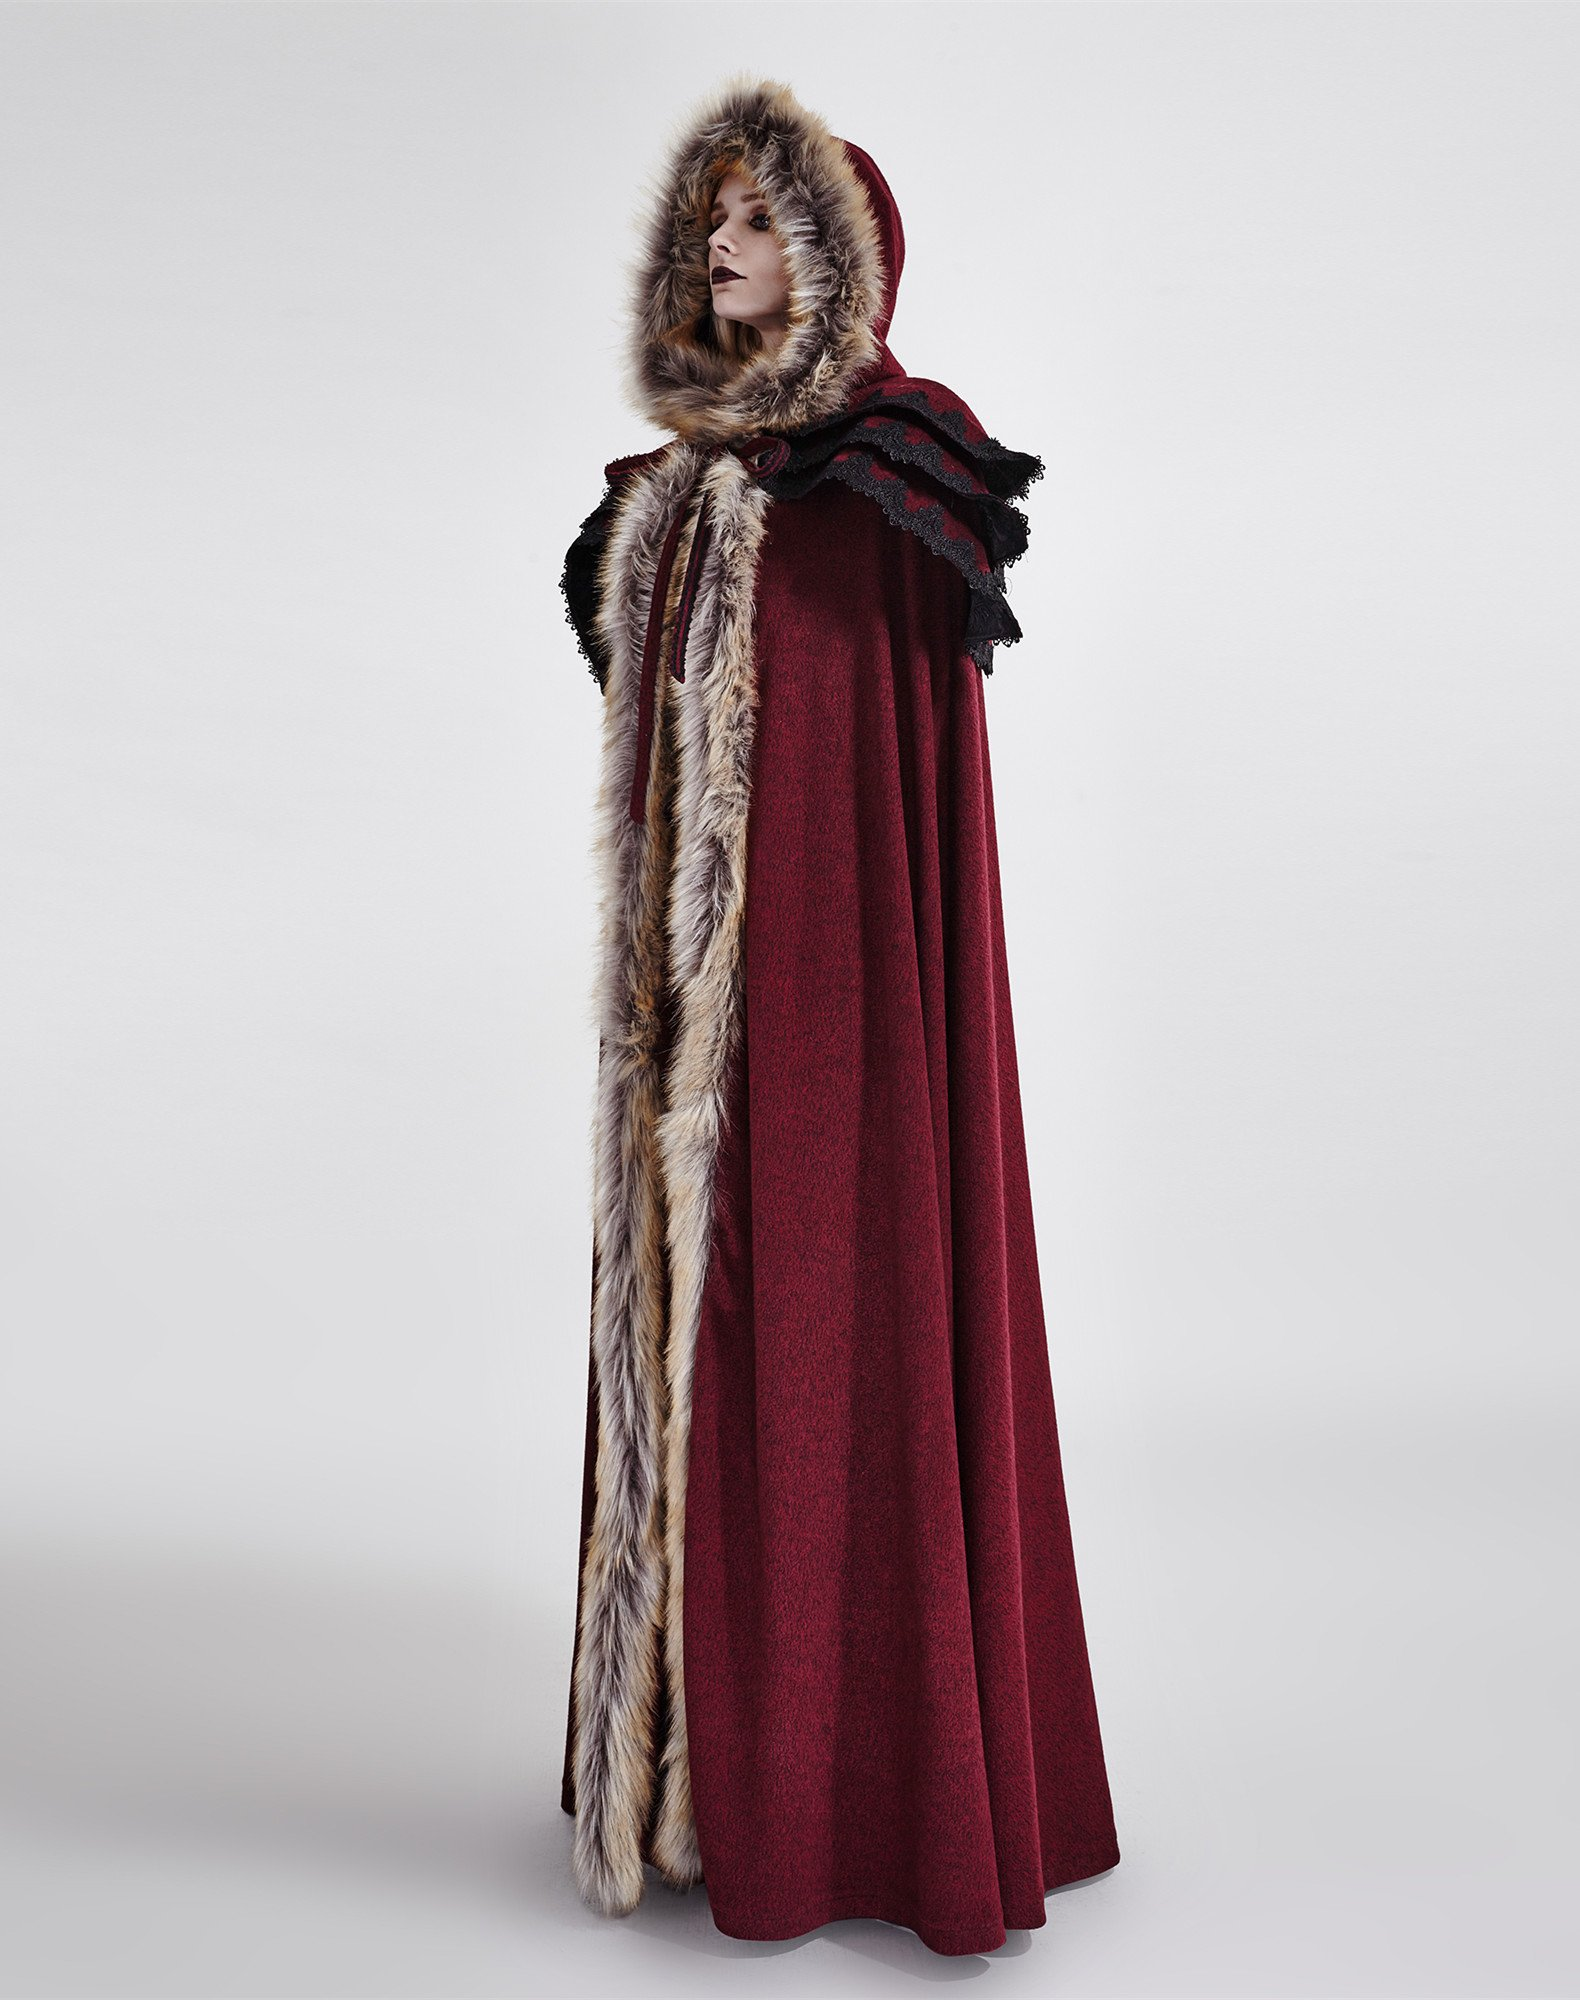 Punk Rave Women's Medieval Fluffy Faux Fur Trimmed Cape Full Length Hooded Cloak Coat(Red) by Punk Rave (Image #3)